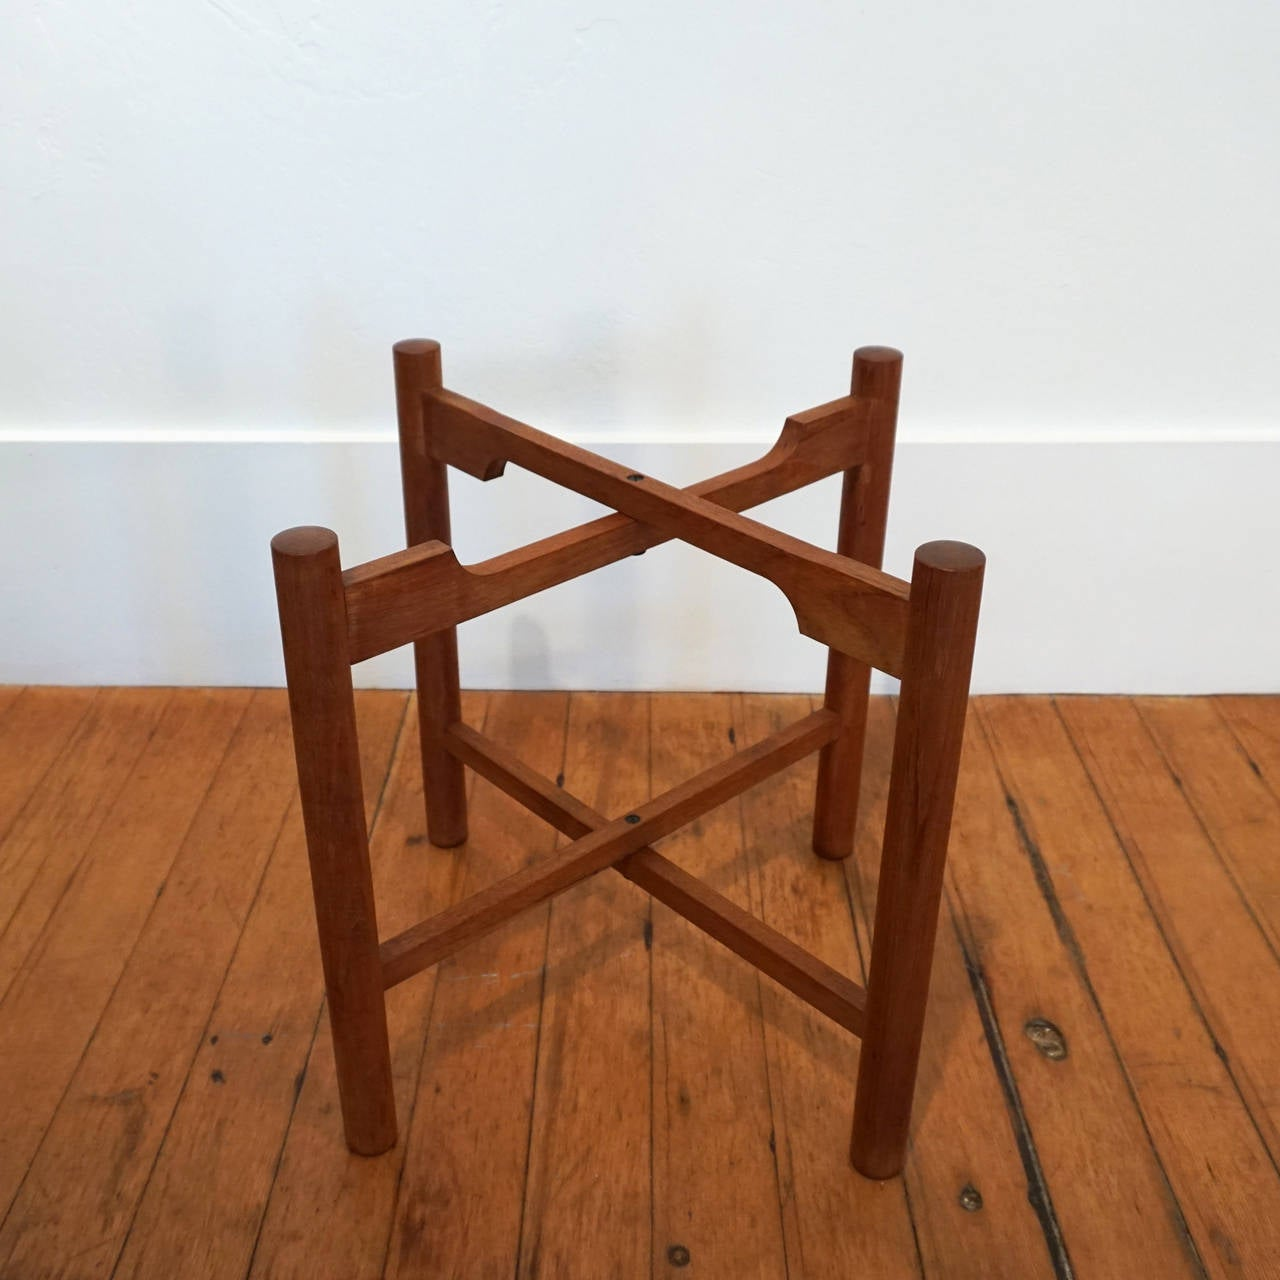 folding japanese chair scoop back dining with knocker side table by kathuo mathumura for